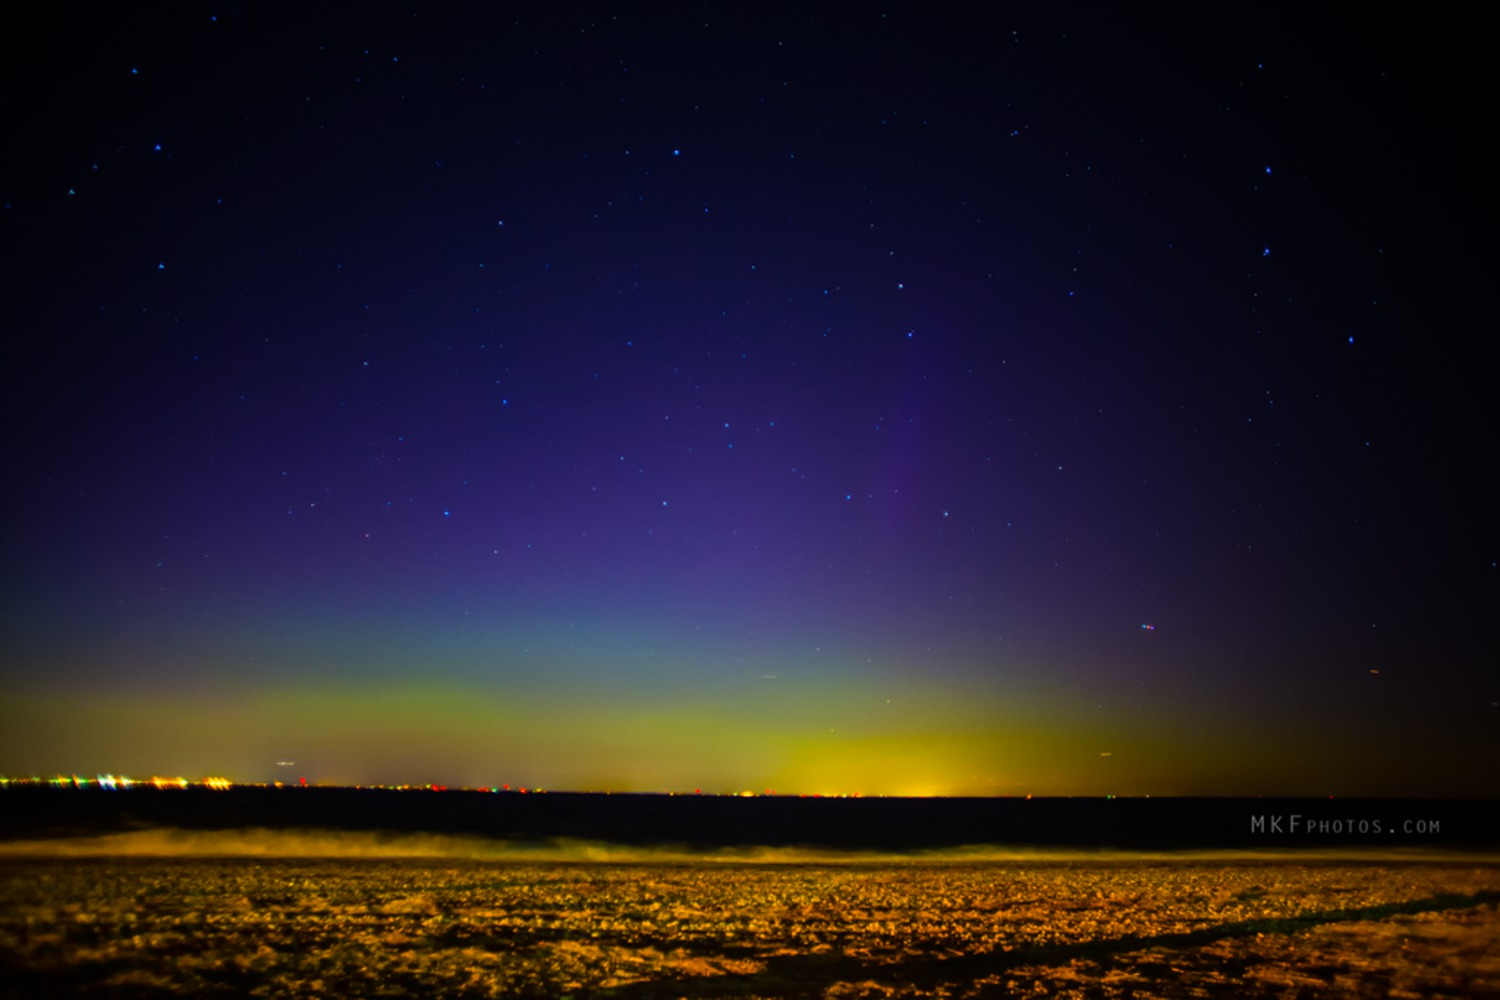 #aurora #NorthernLights north shore of LI NY. Faint pillar just to the left of center. @LeeGoldbergABC7 http://t.co/tjrGy2PuRo